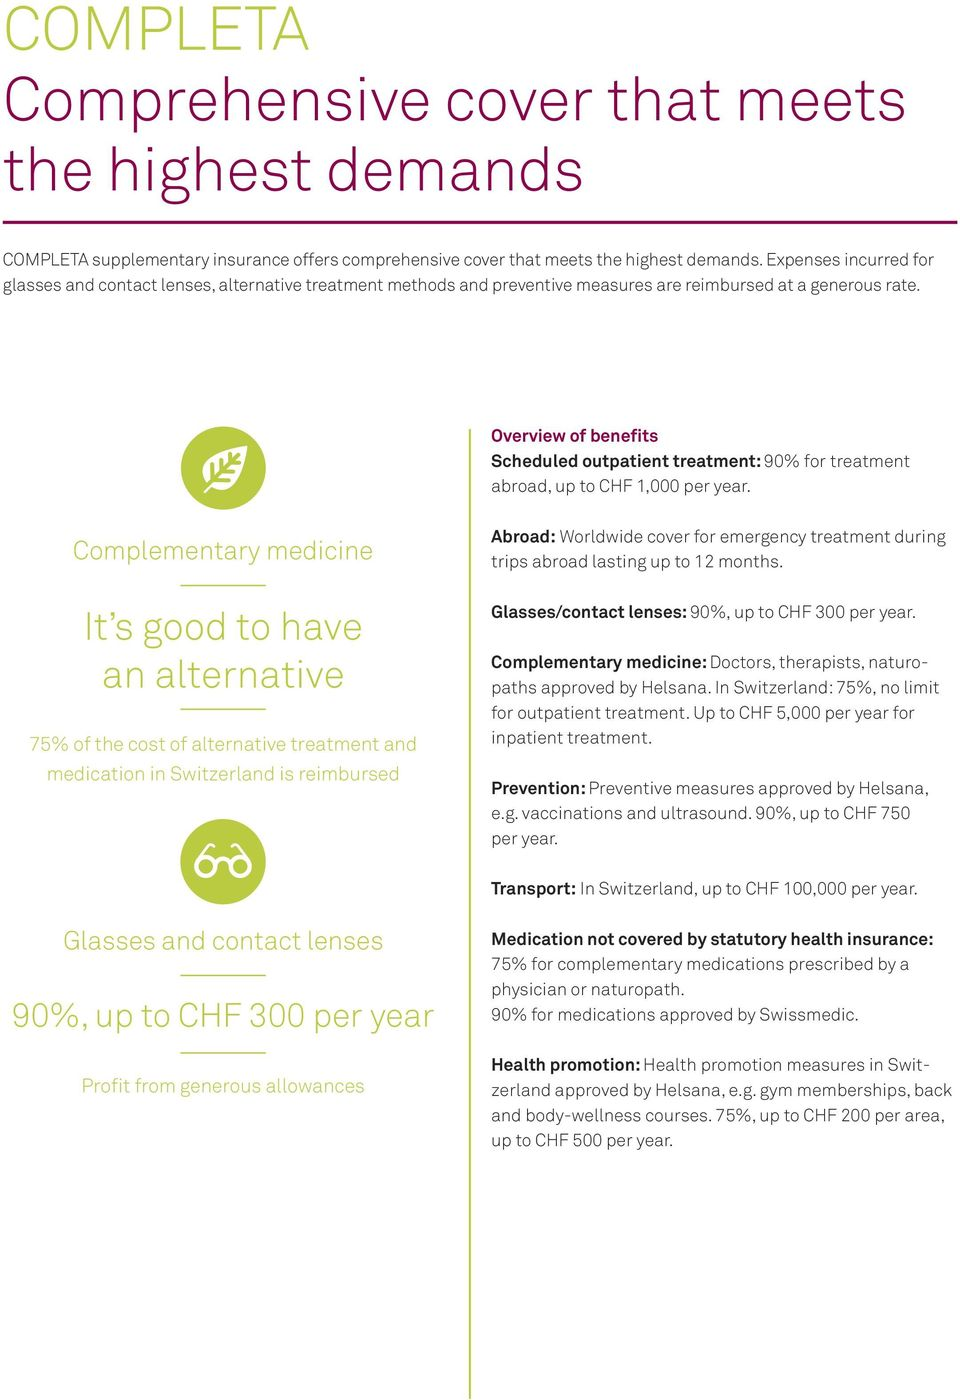 Overview of benefits Scheduled outpatient treatment: 90% for treatment abroad, up to CHF 1,000 per year.